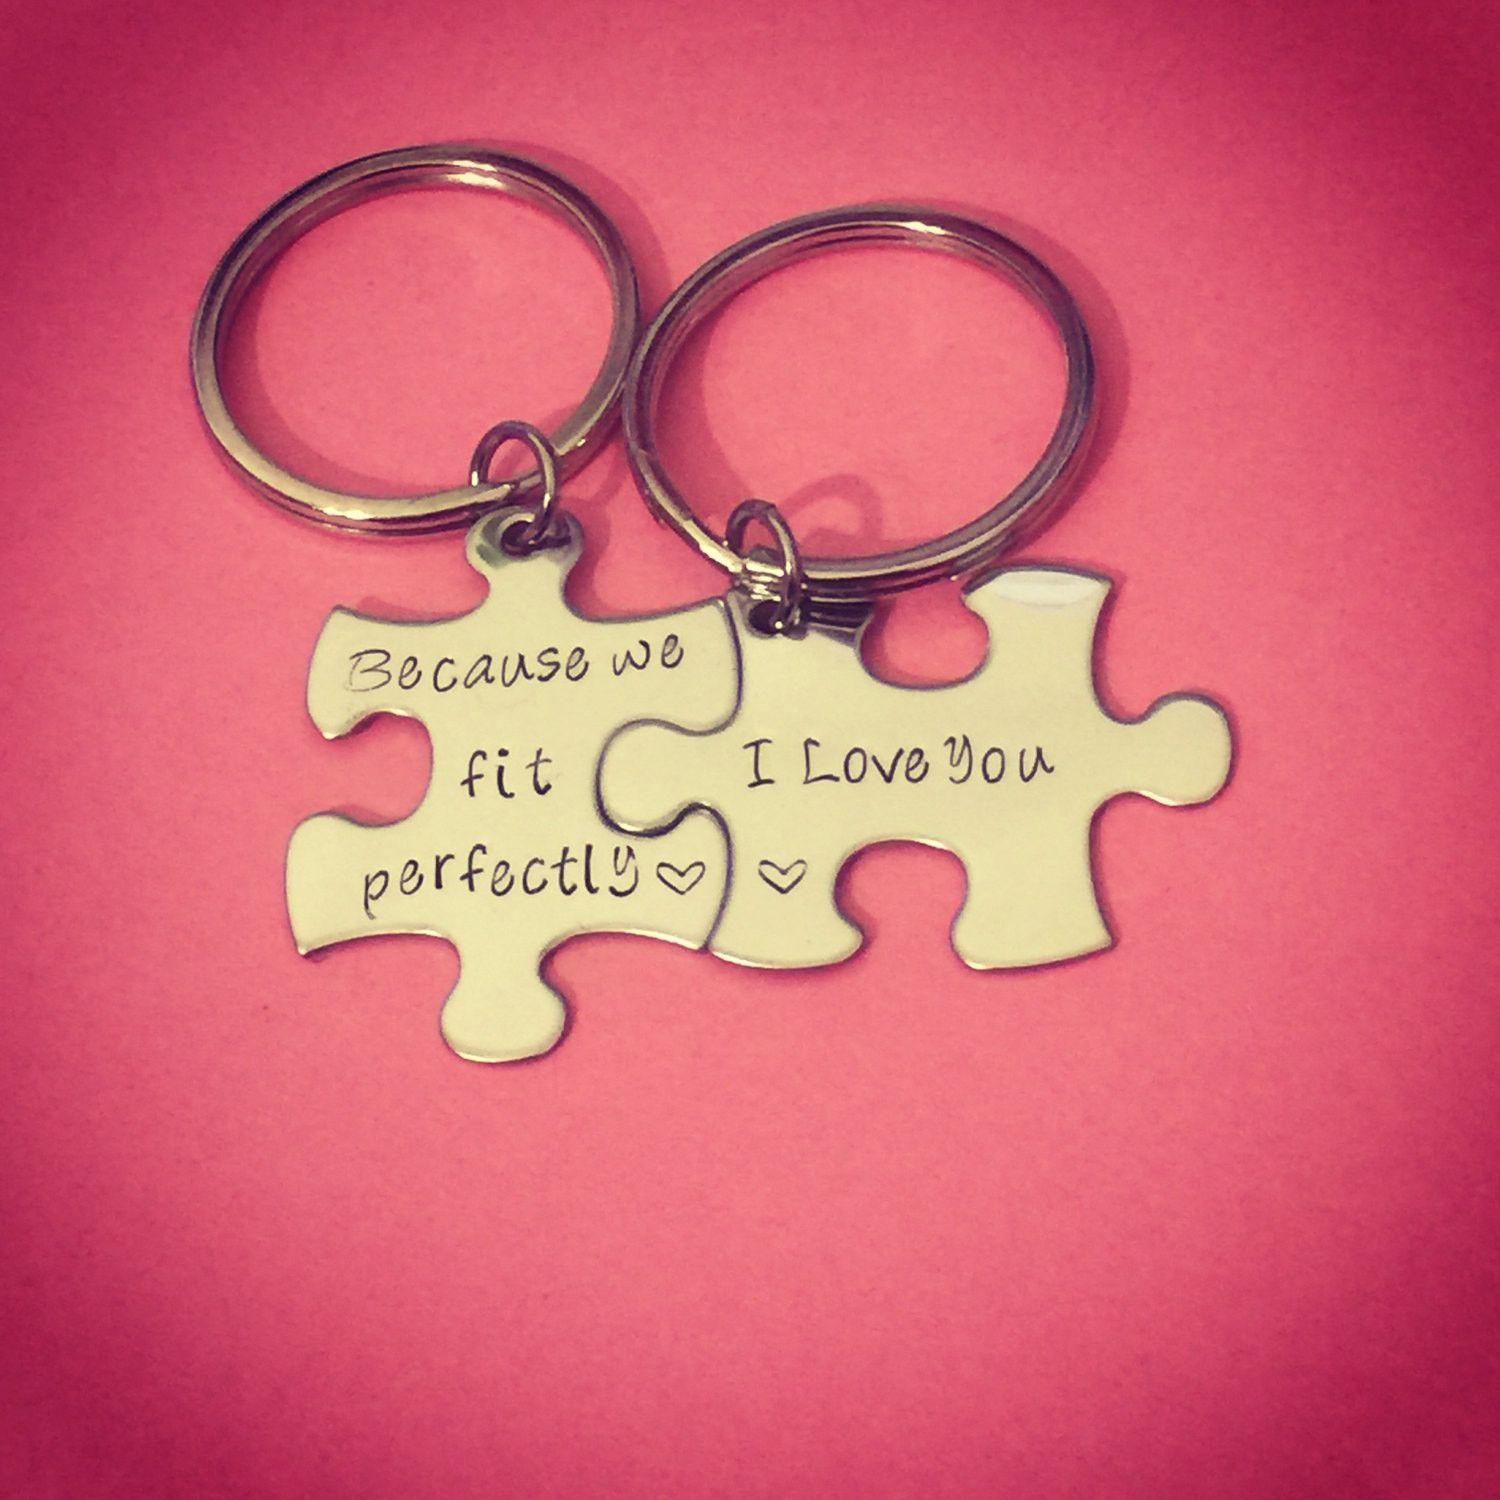 Because we fit perfectly i love you, Couples Keychains, Couples Gift ...